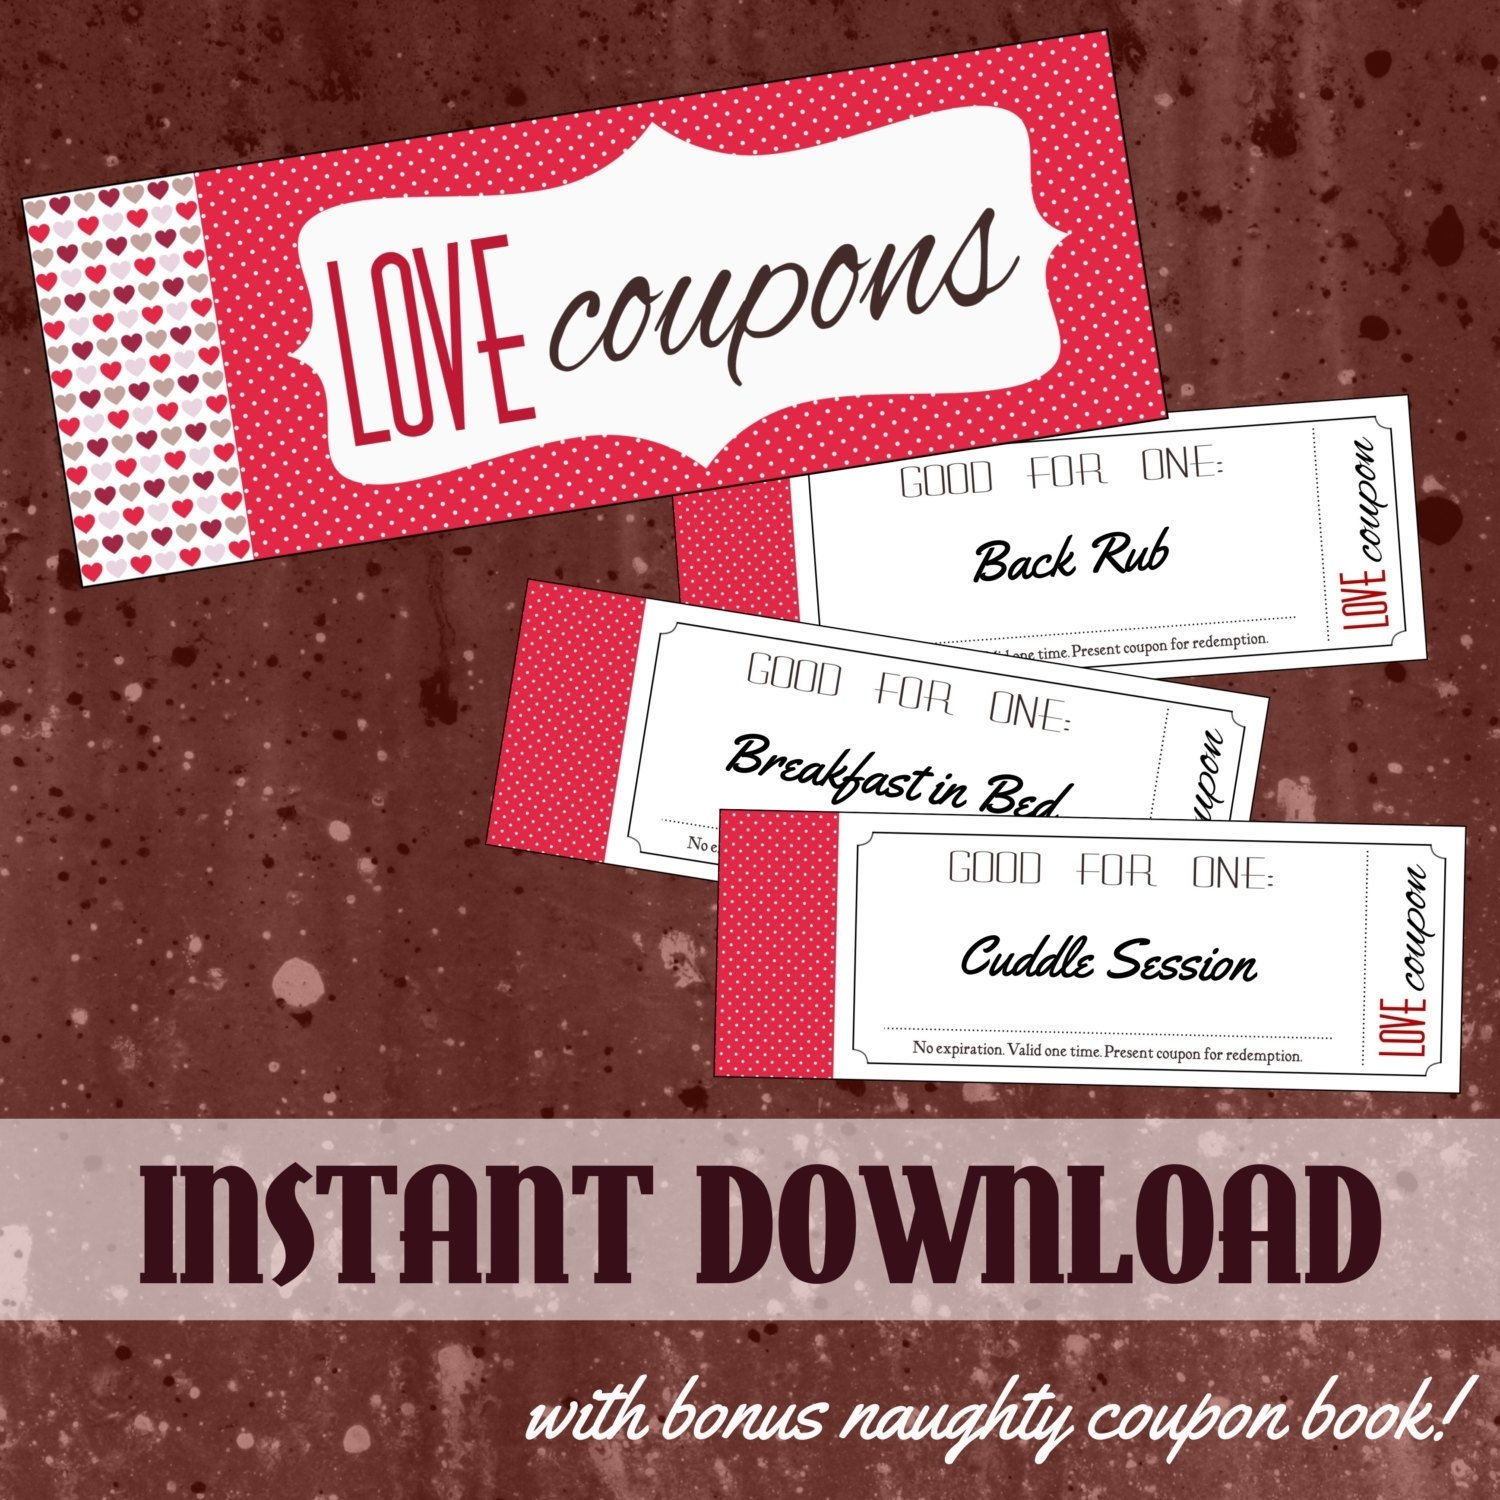 10 Beautiful Naughty Coupon Ideas For Boyfriend printable love coupon book for him or for her with bonus naughty 4 2020